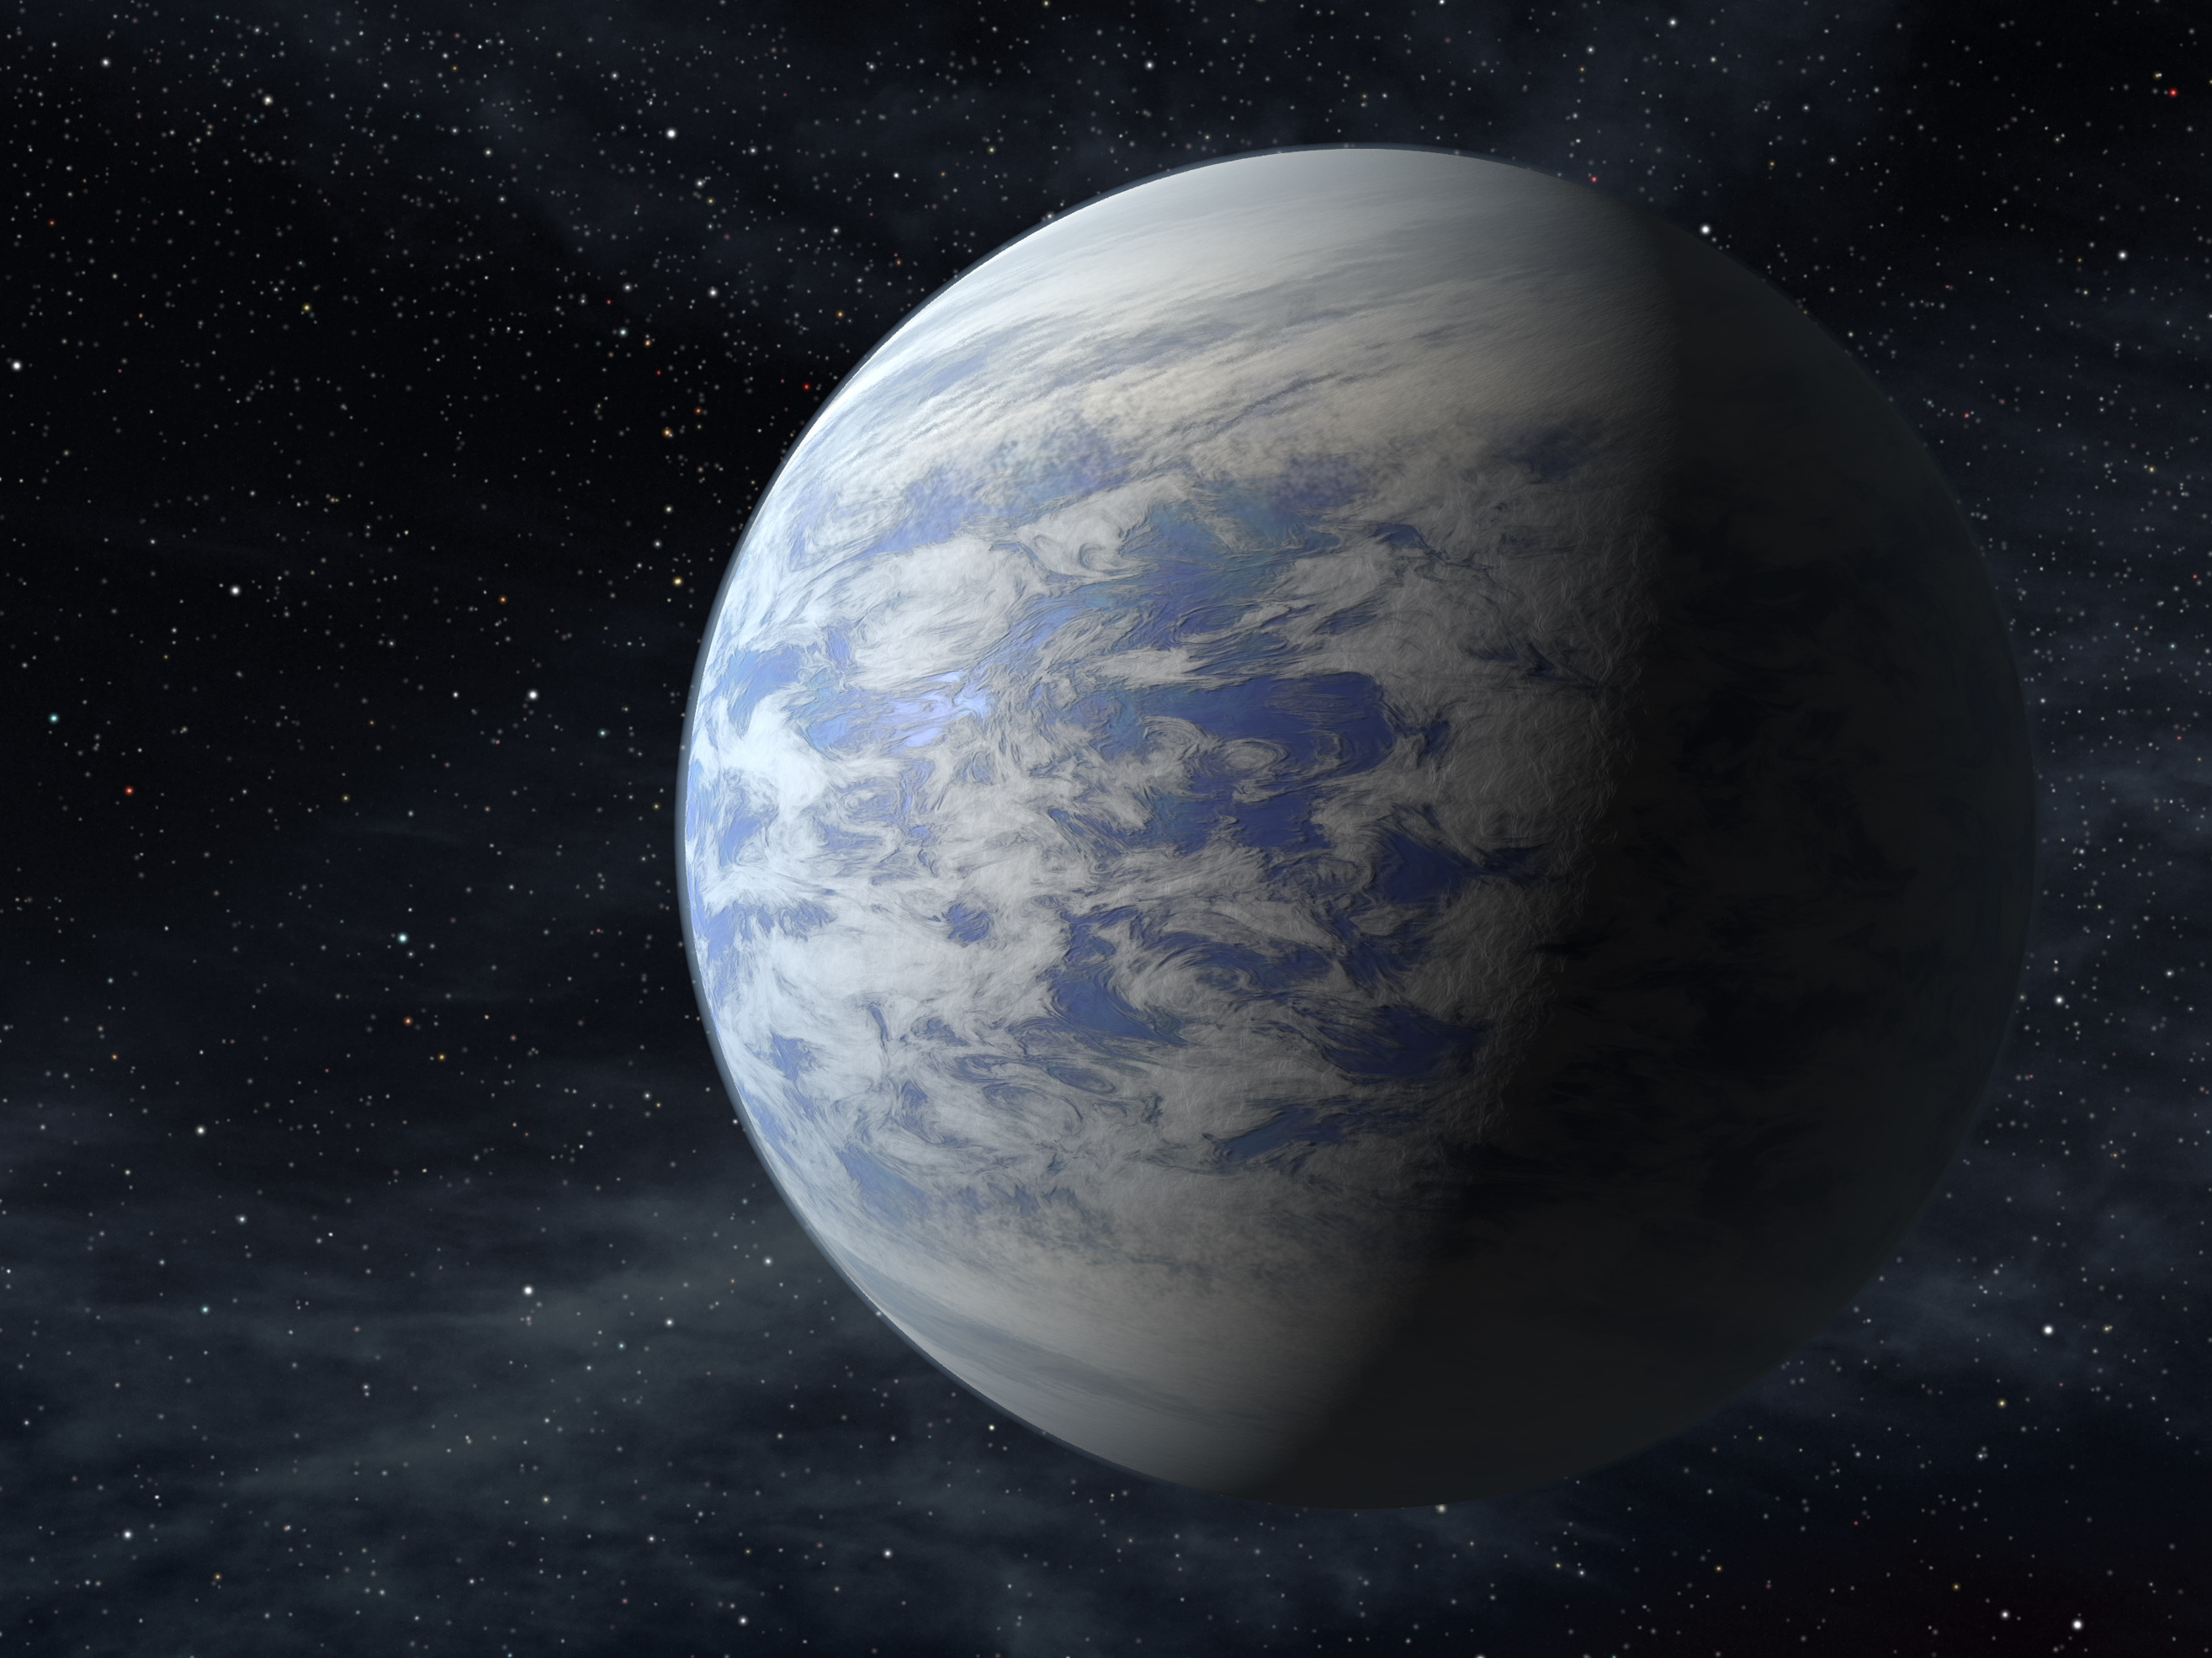 Scientists Estimate 20 Billion Earth-Like Planets In Our Galaxy